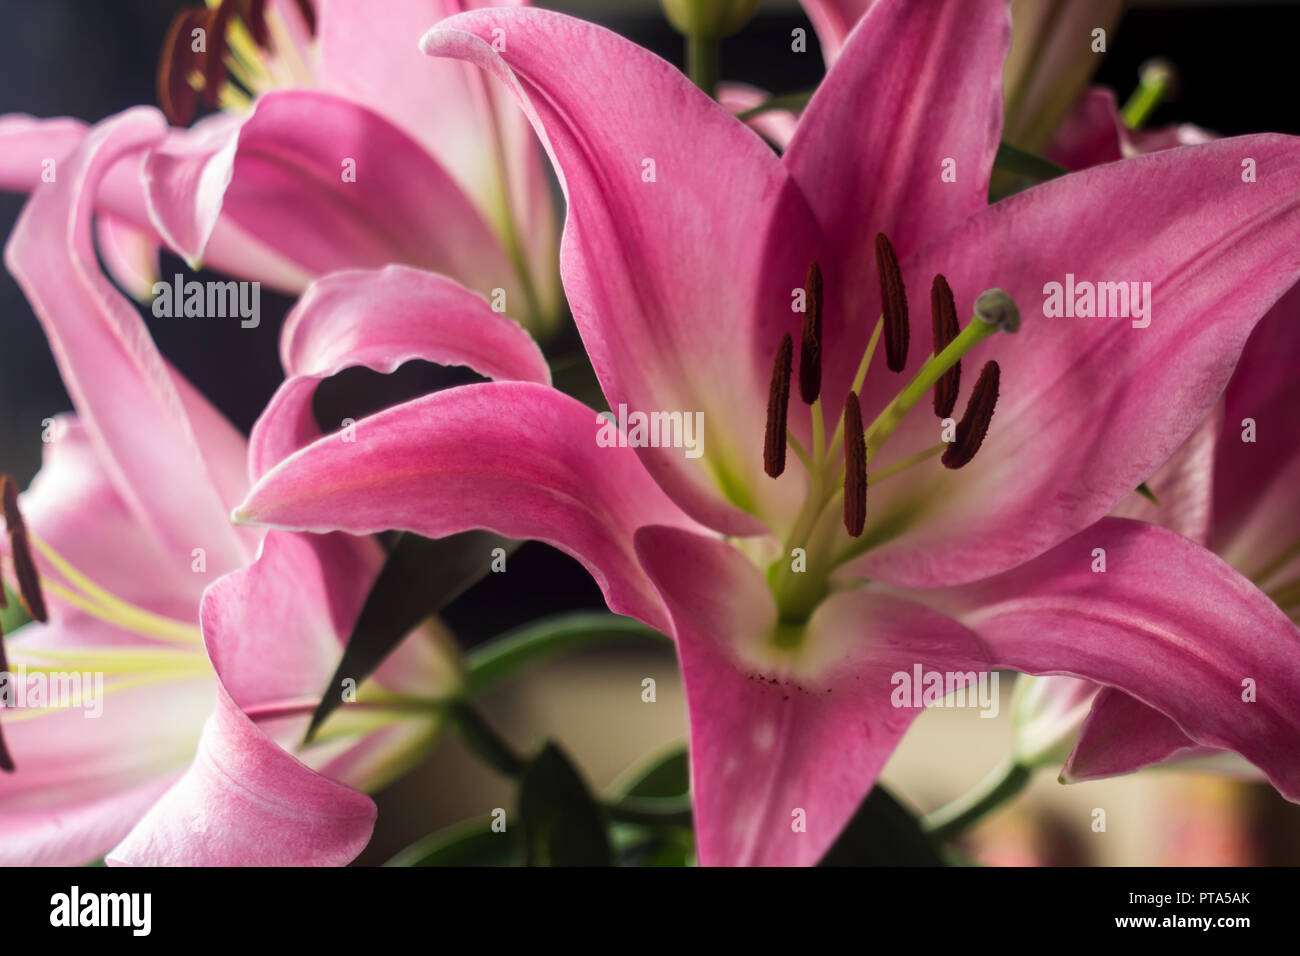 Blooming pink lily flowers close uptals of pink color brown blooming pink lily flowers close uptals of pink color brown stamens and green pistilckground for a site about flowersnatureart and bouquets izmirmasajfo